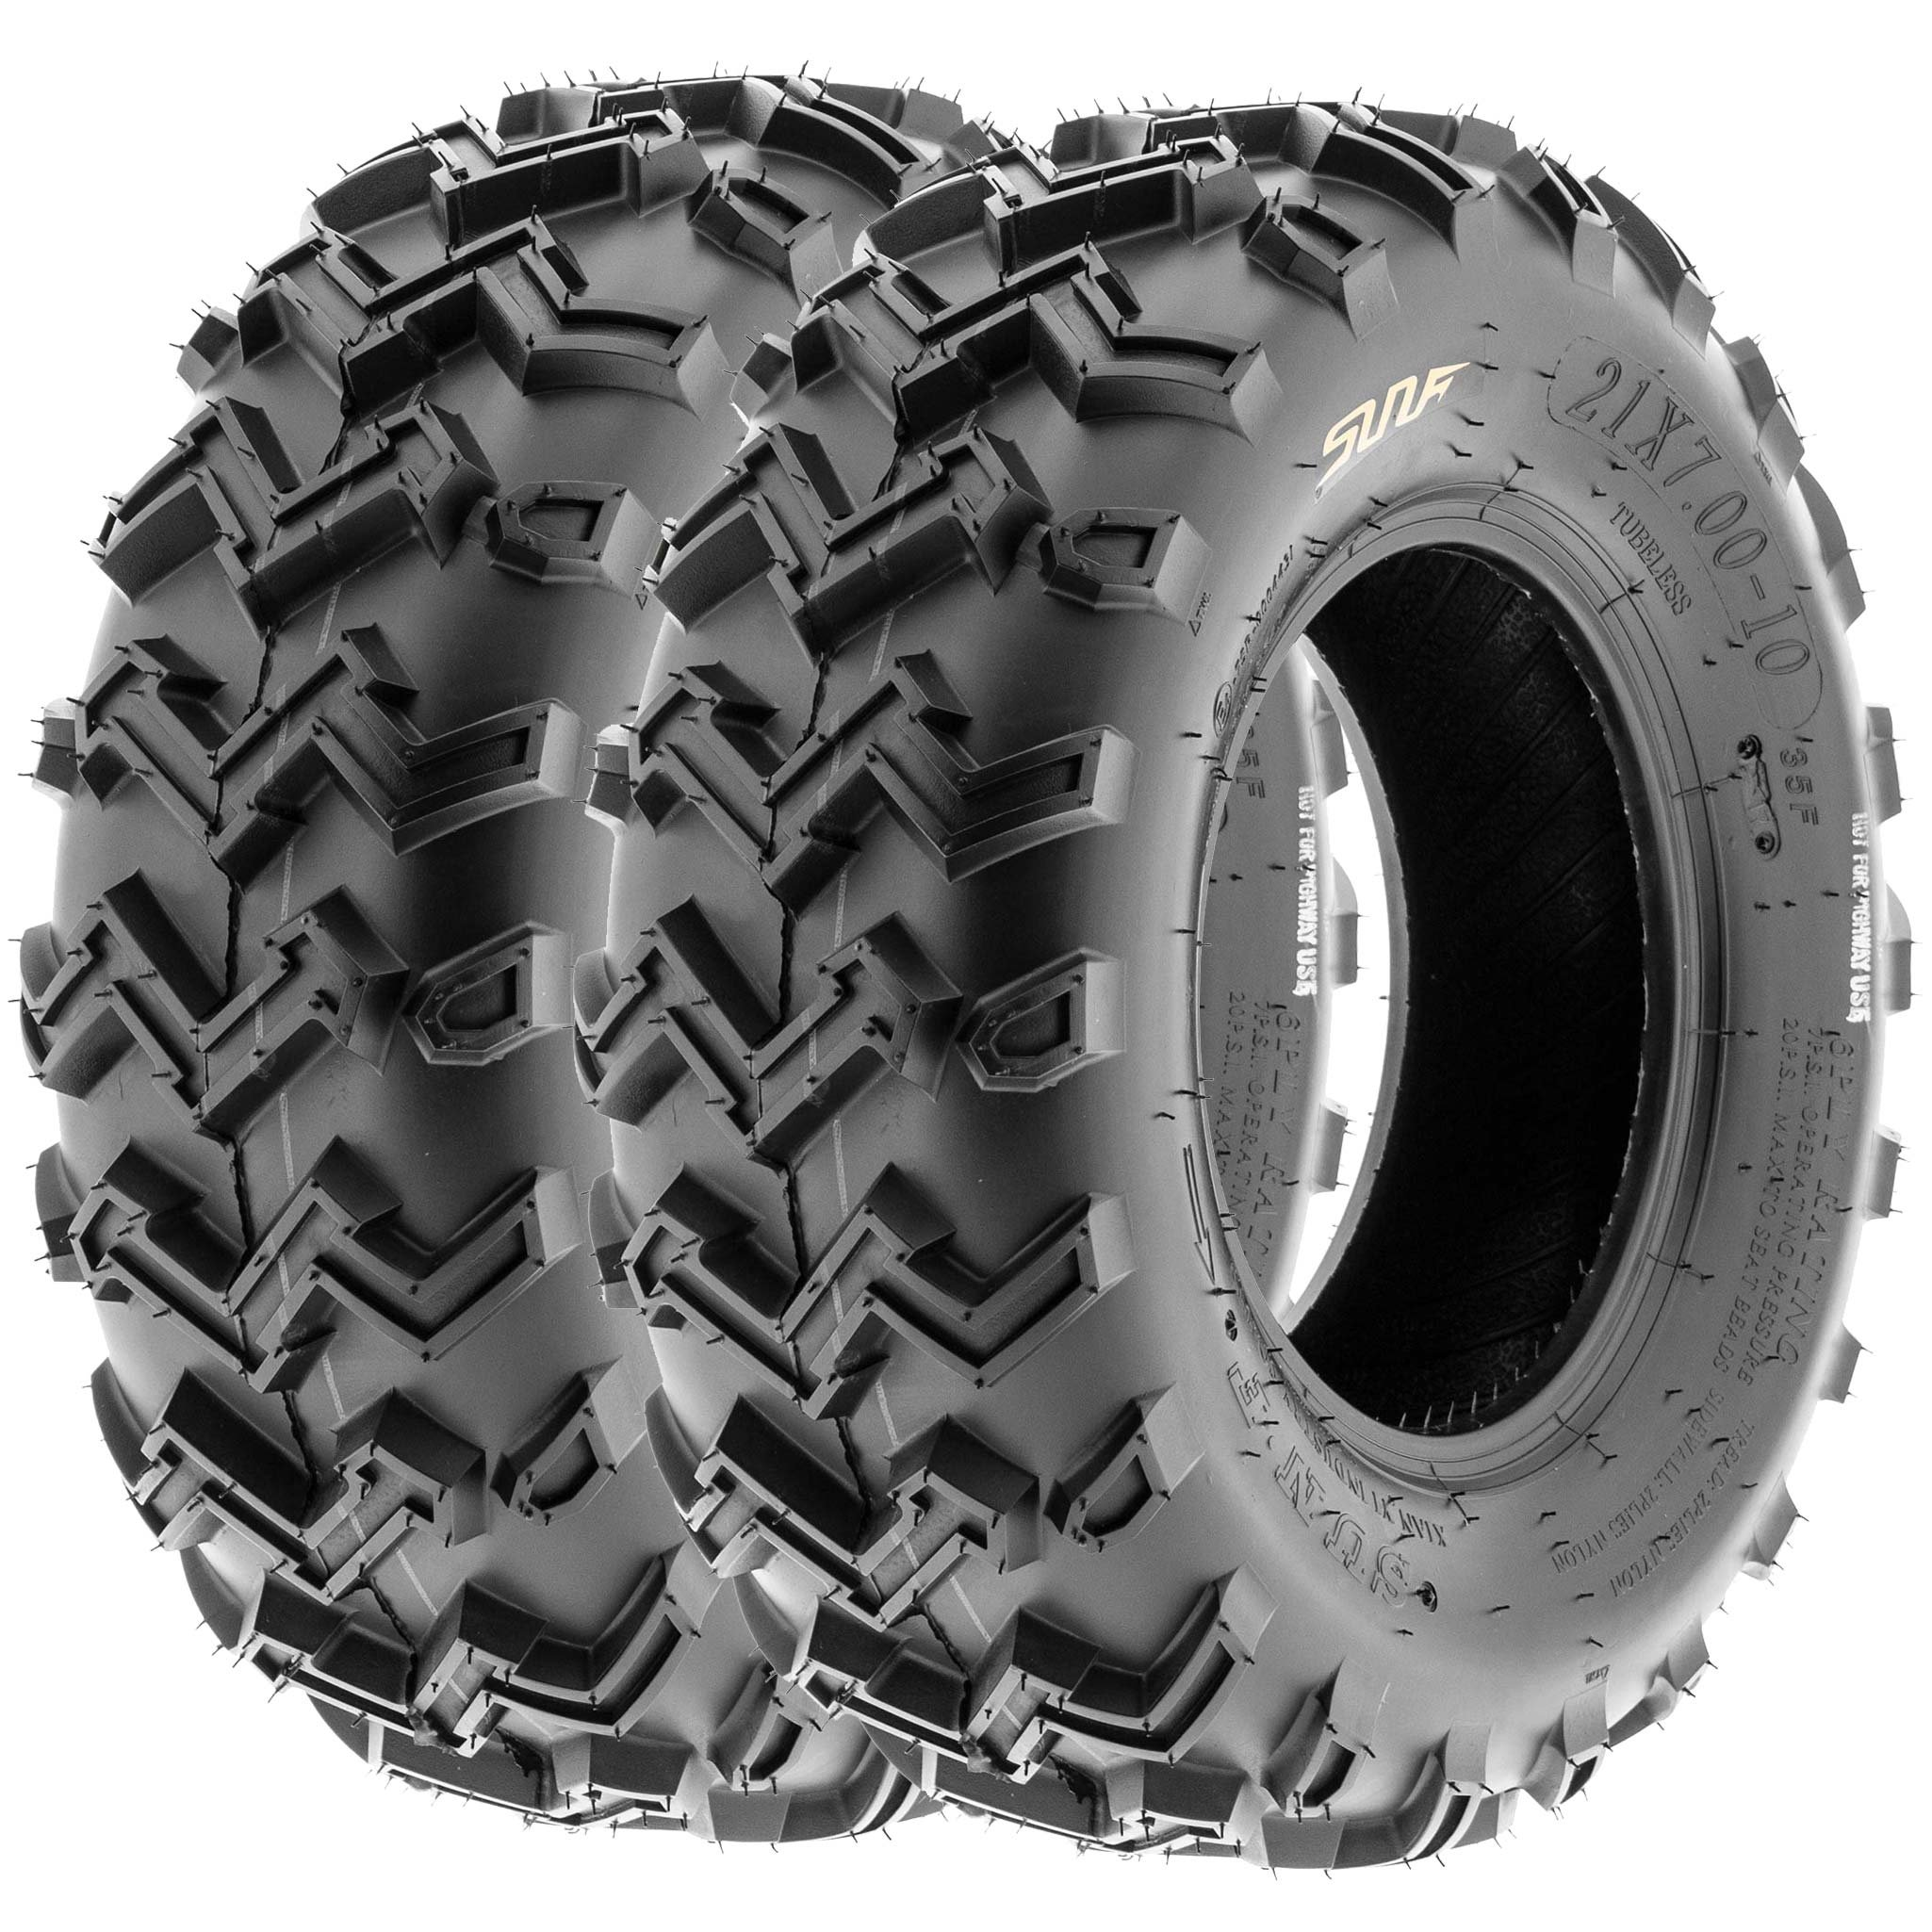 SunF 21x7-10 21x7x10 ATV UTV All Terrain Race Replacement 6 PR Tubeless Tires A001, [Set of 2] by SunF (Image #1)